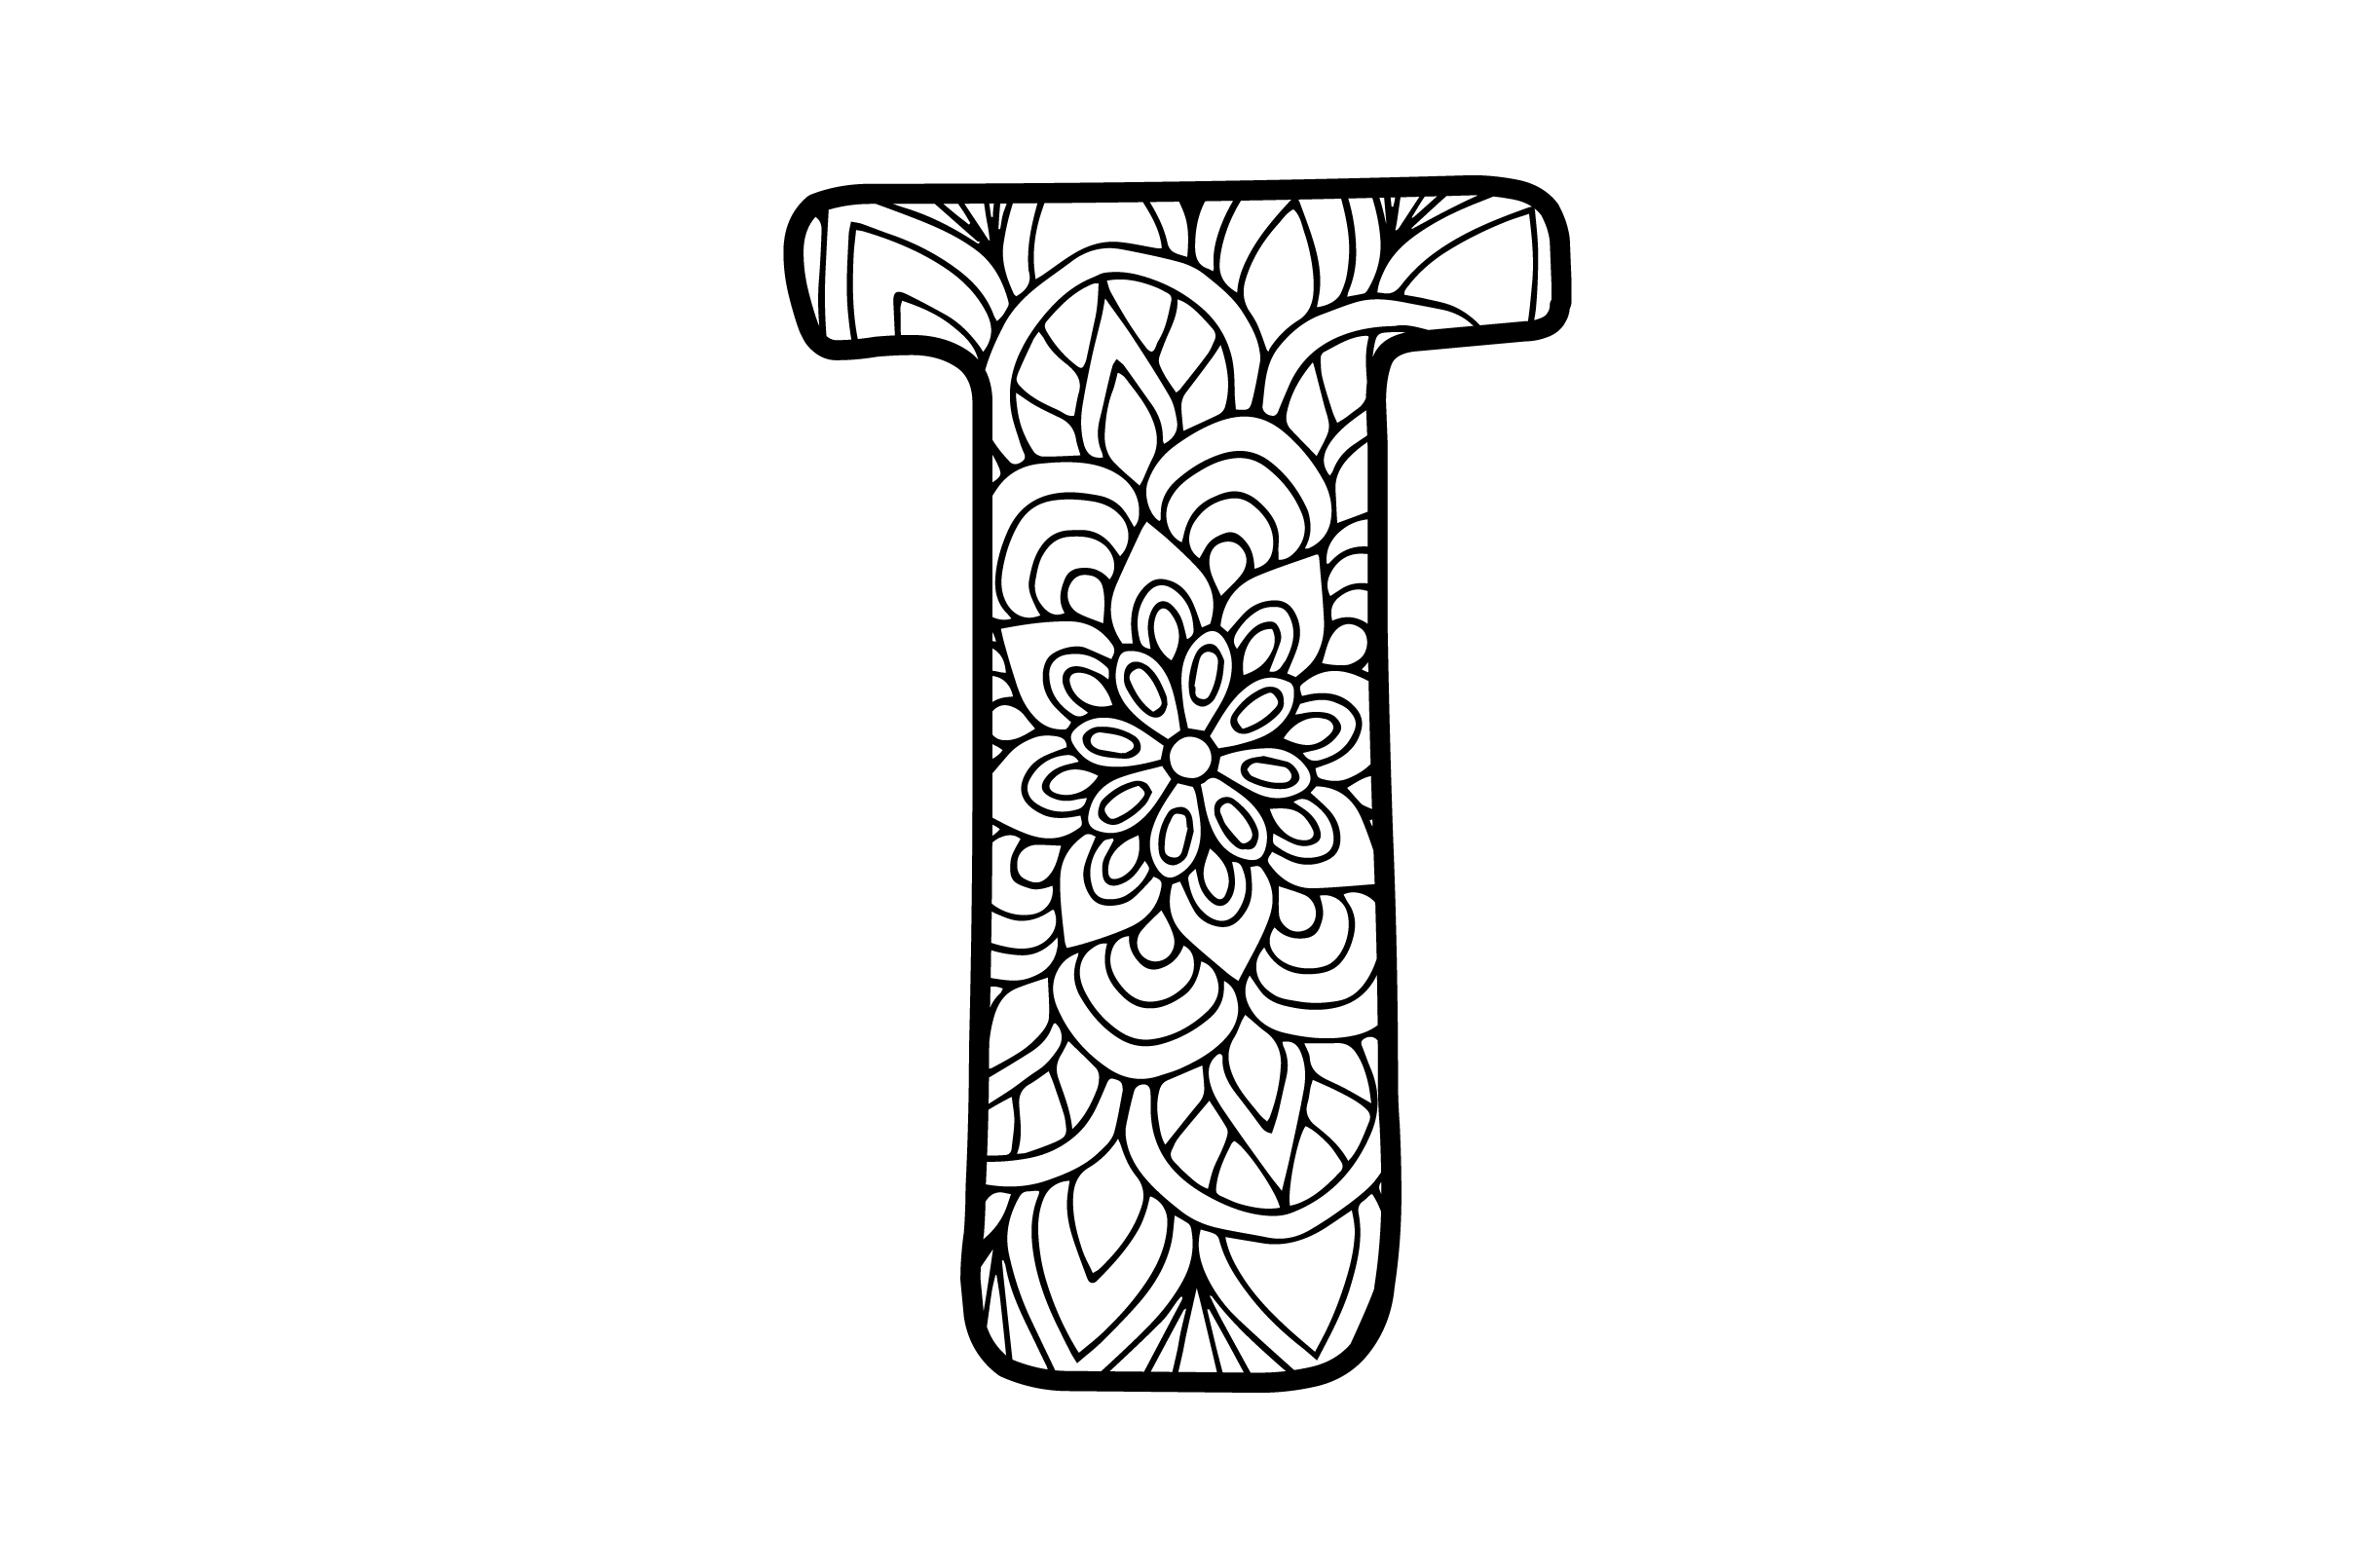 Download Free Mandala Alphabet T Svg Cut File By Creative Fabrica Crafts for Cricut Explore, Silhouette and other cutting machines.